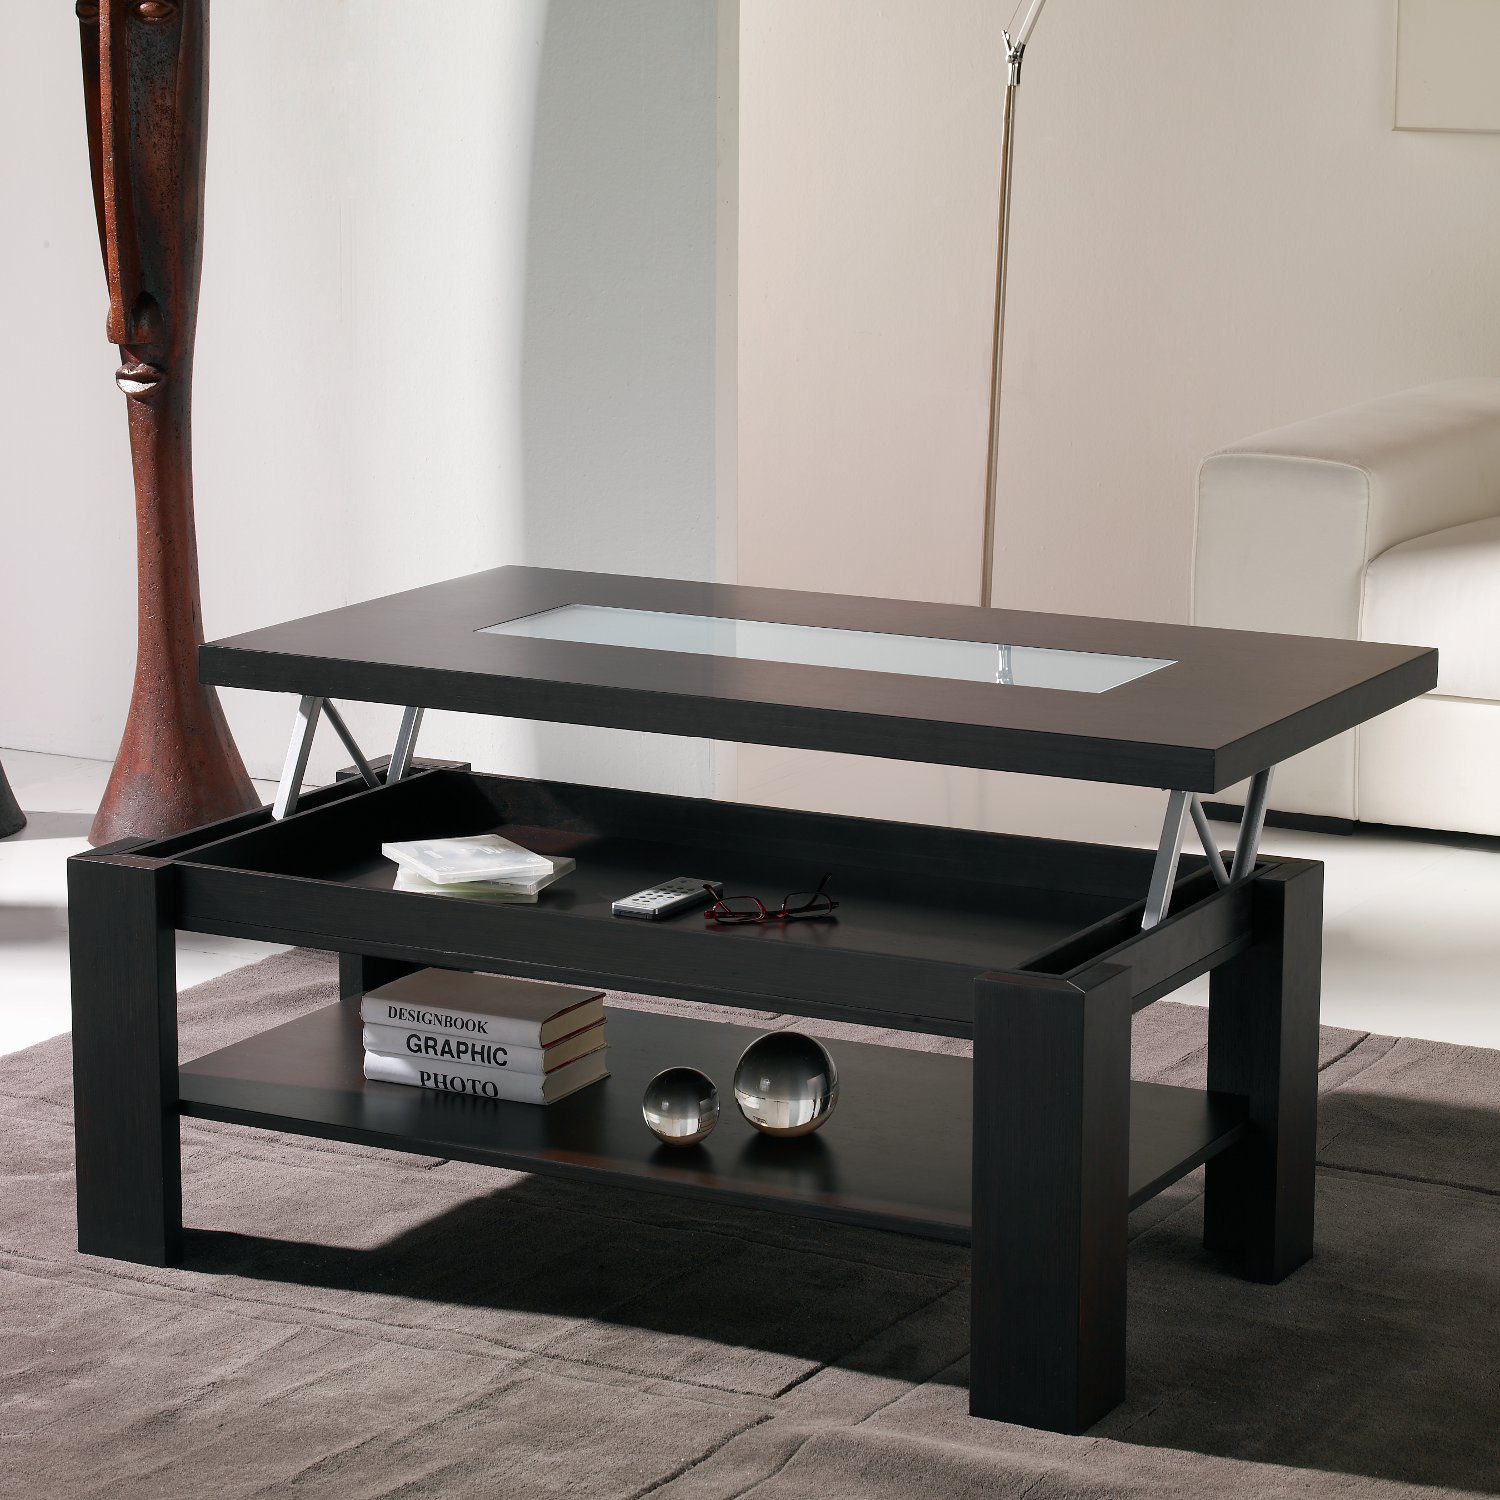 La table basse relevable r volutionne le salon d co et - Table basse modulable pas cher ...